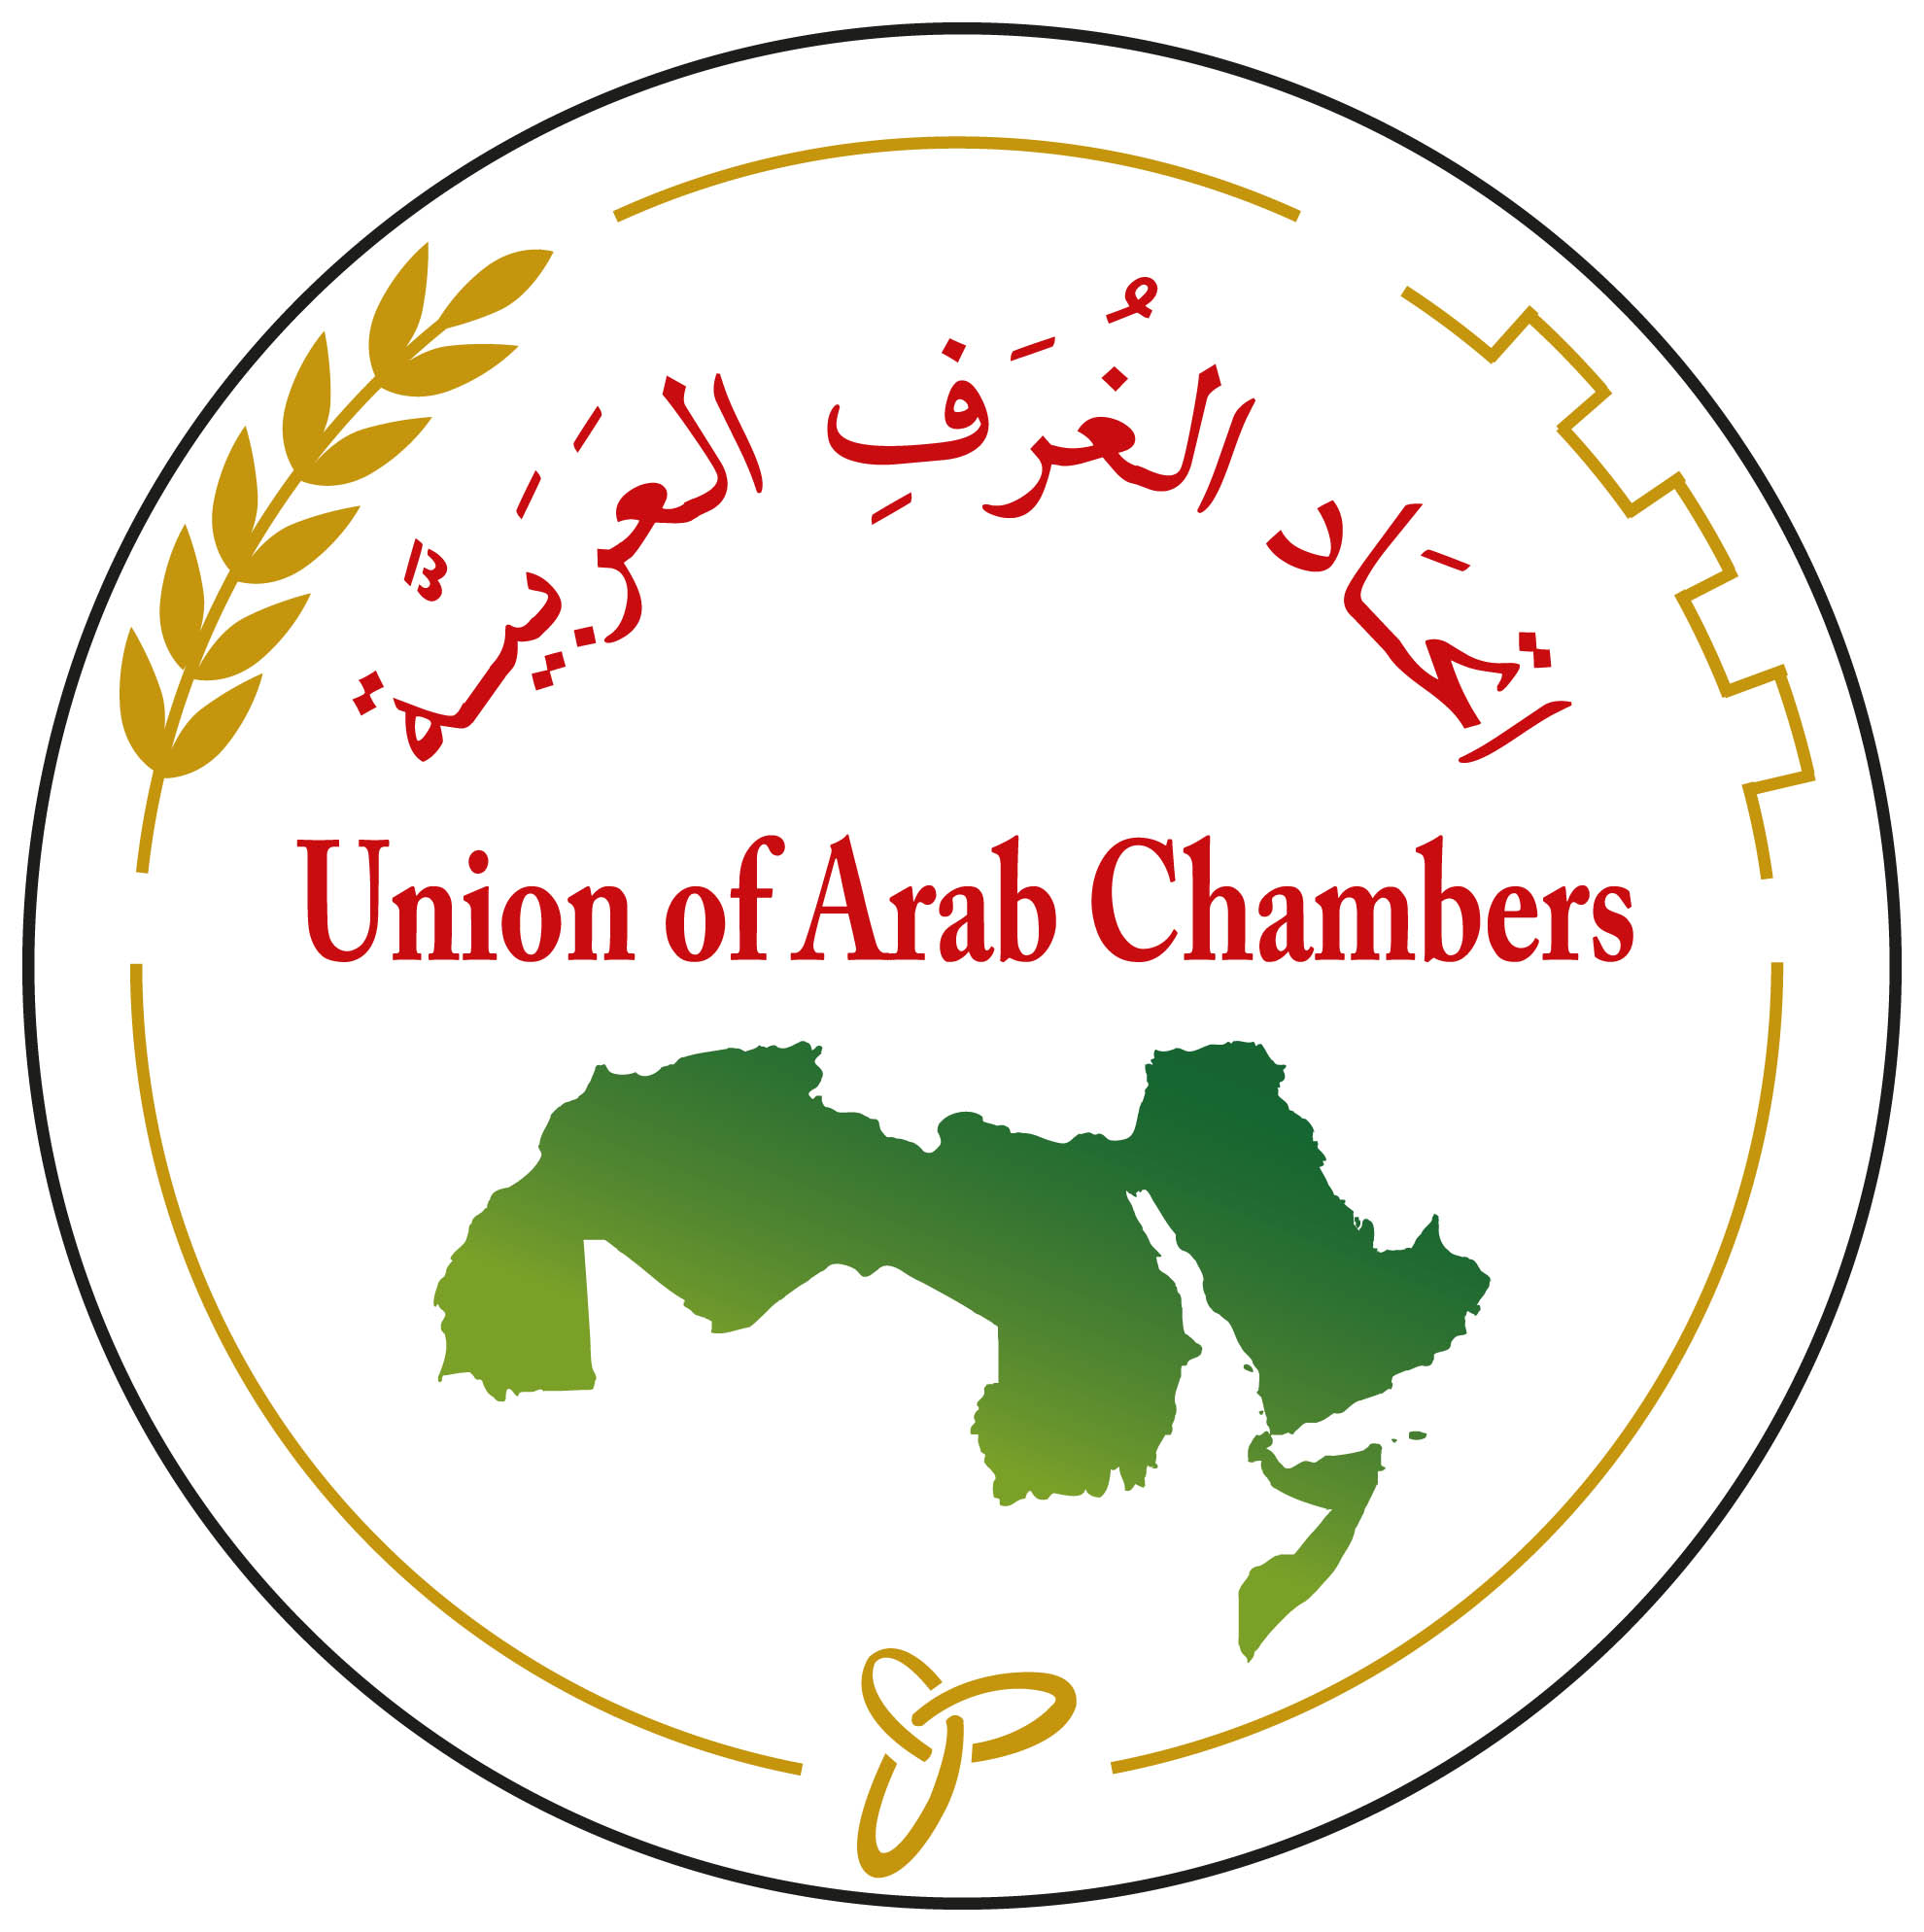 Union of Arab Chambers